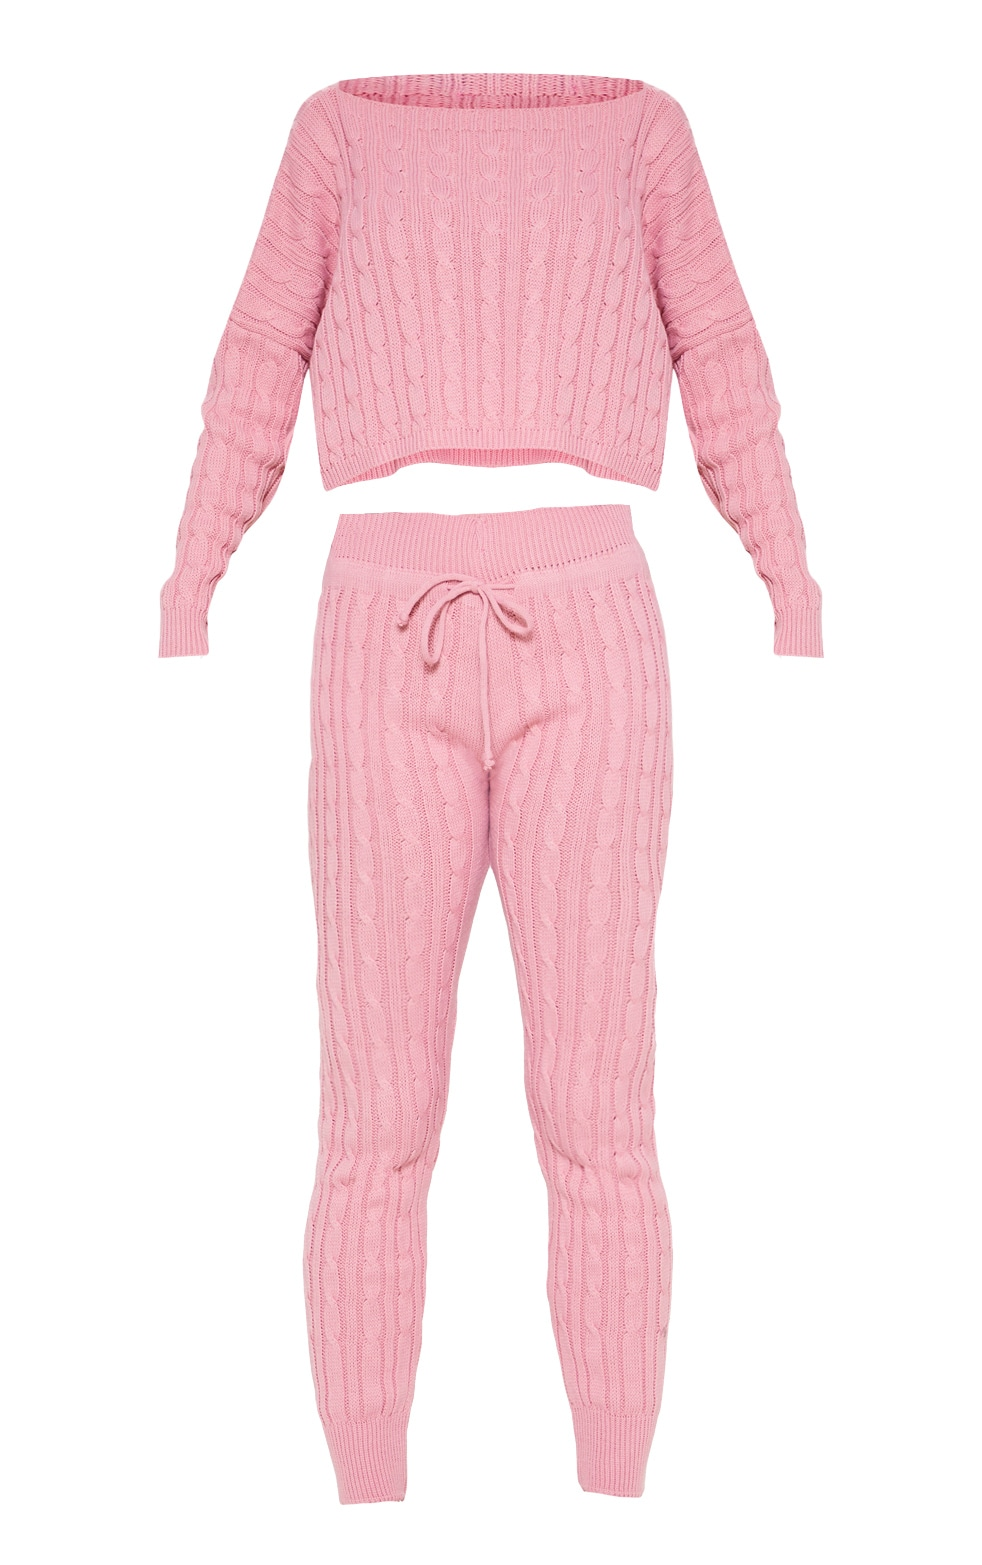 Dusty Pink Cable Knit Jumper & Legging Set 3